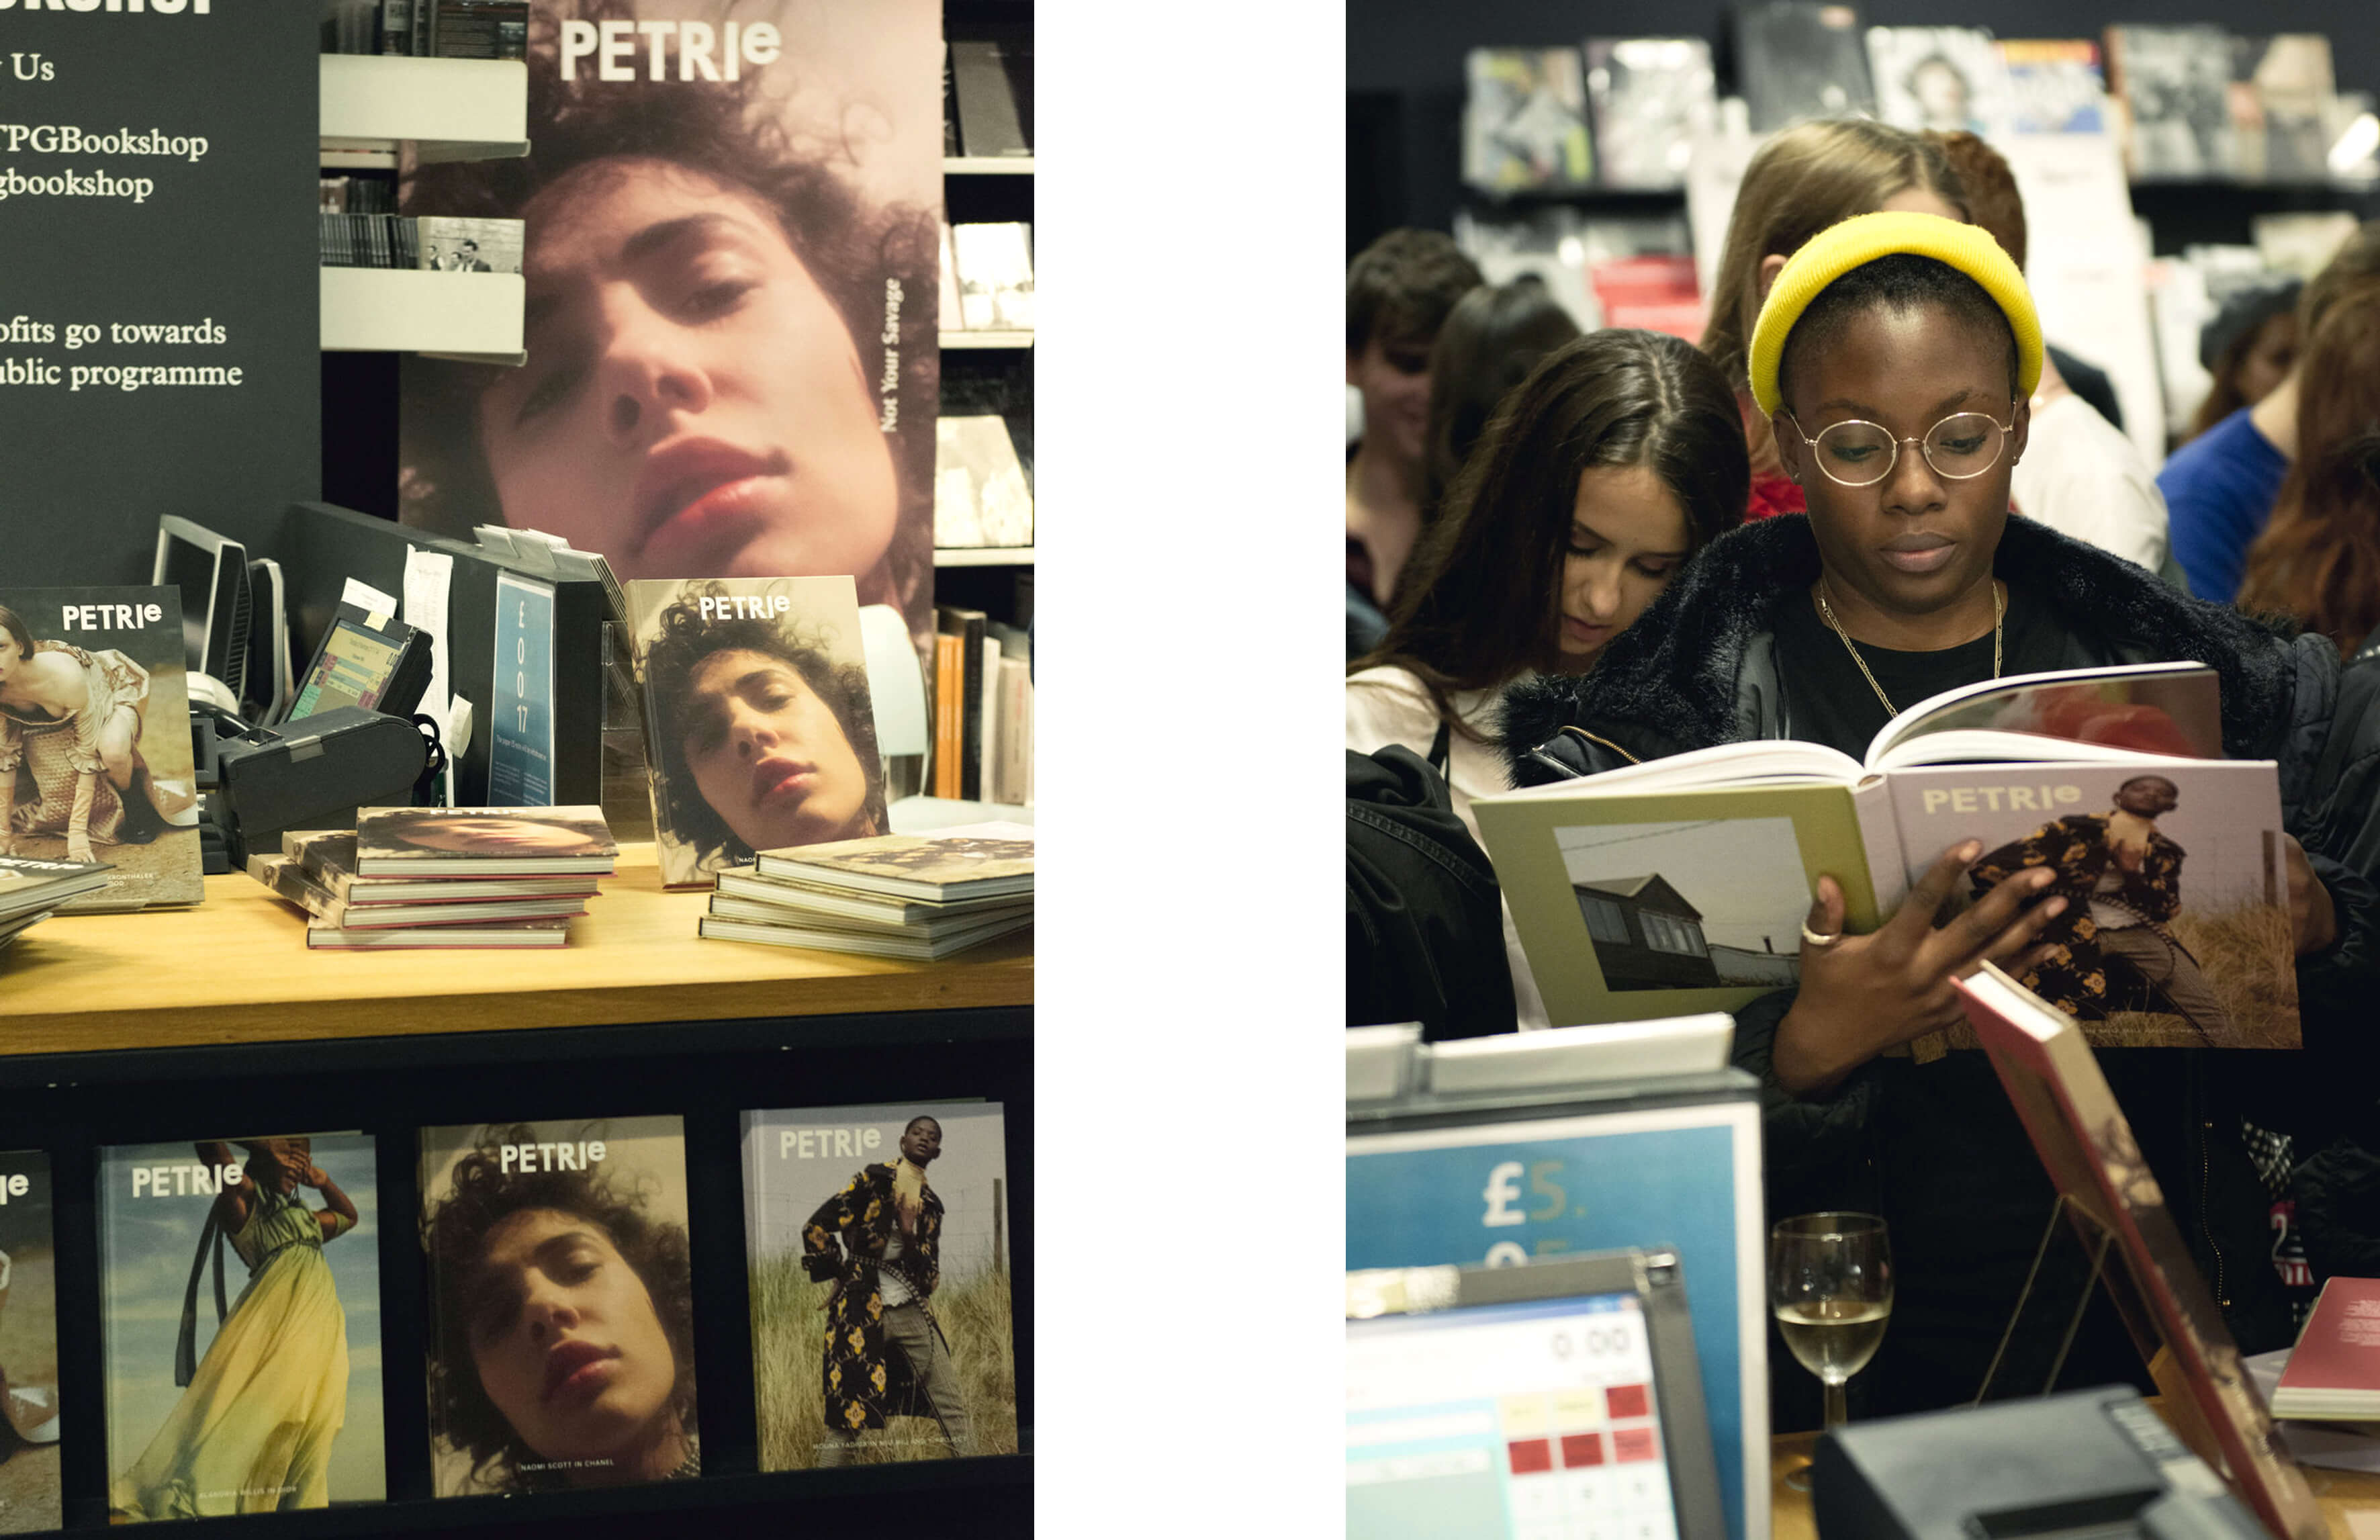 Petrie magazine launch event at Photographers' Gallery London